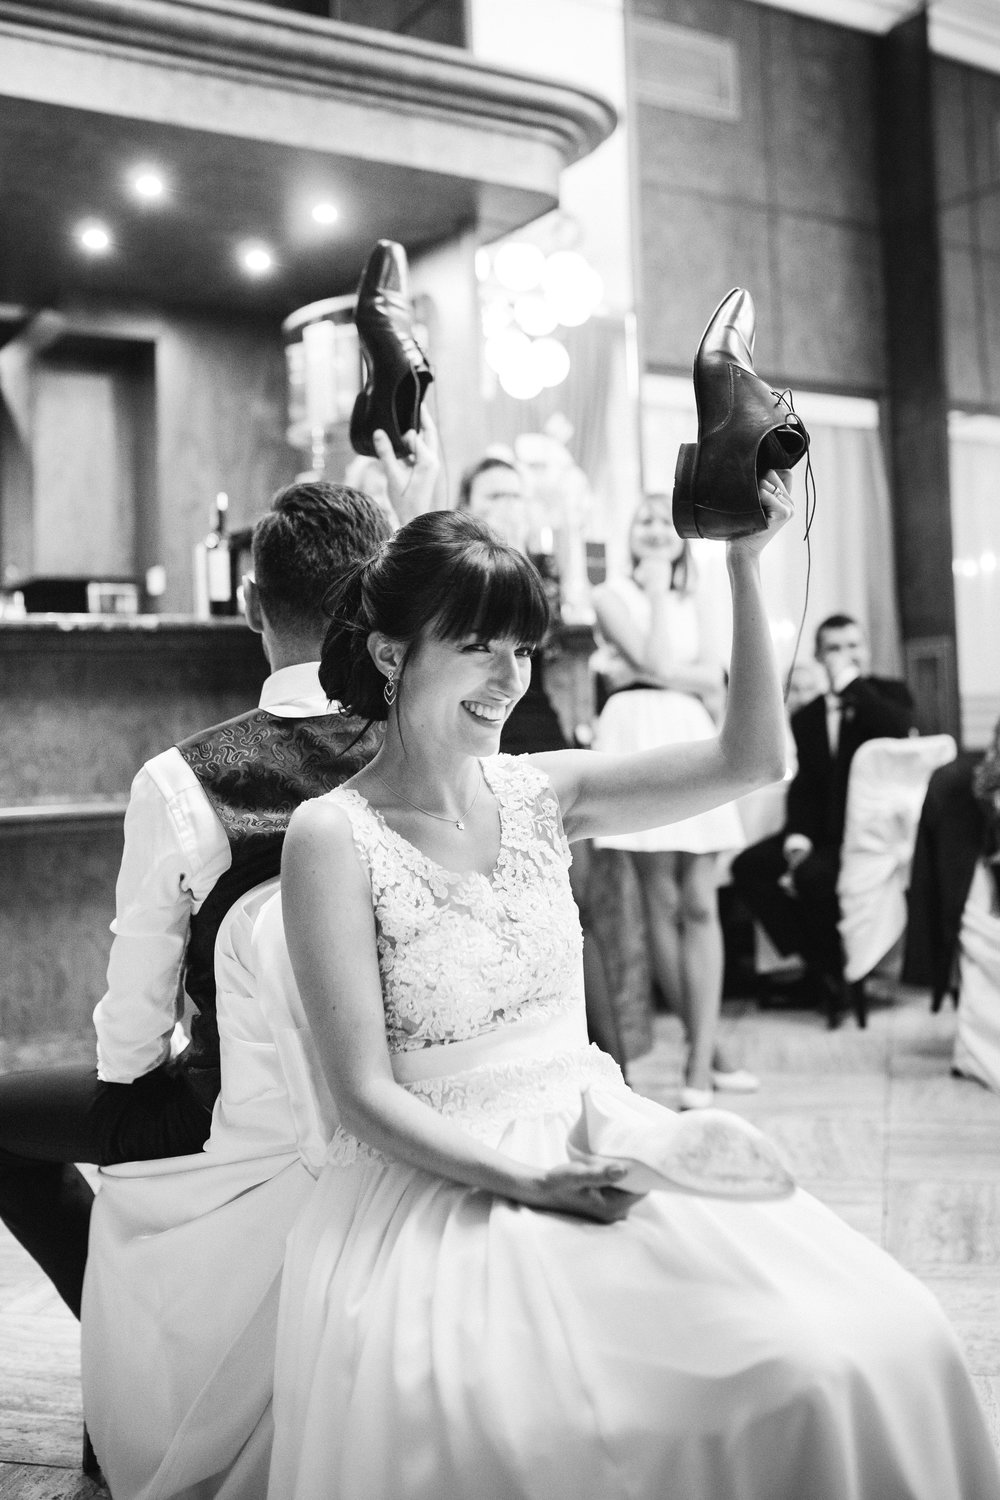 destination-wedding-photographer-slovakia-bratislava-bw-documentary-style-reception-1.jpg